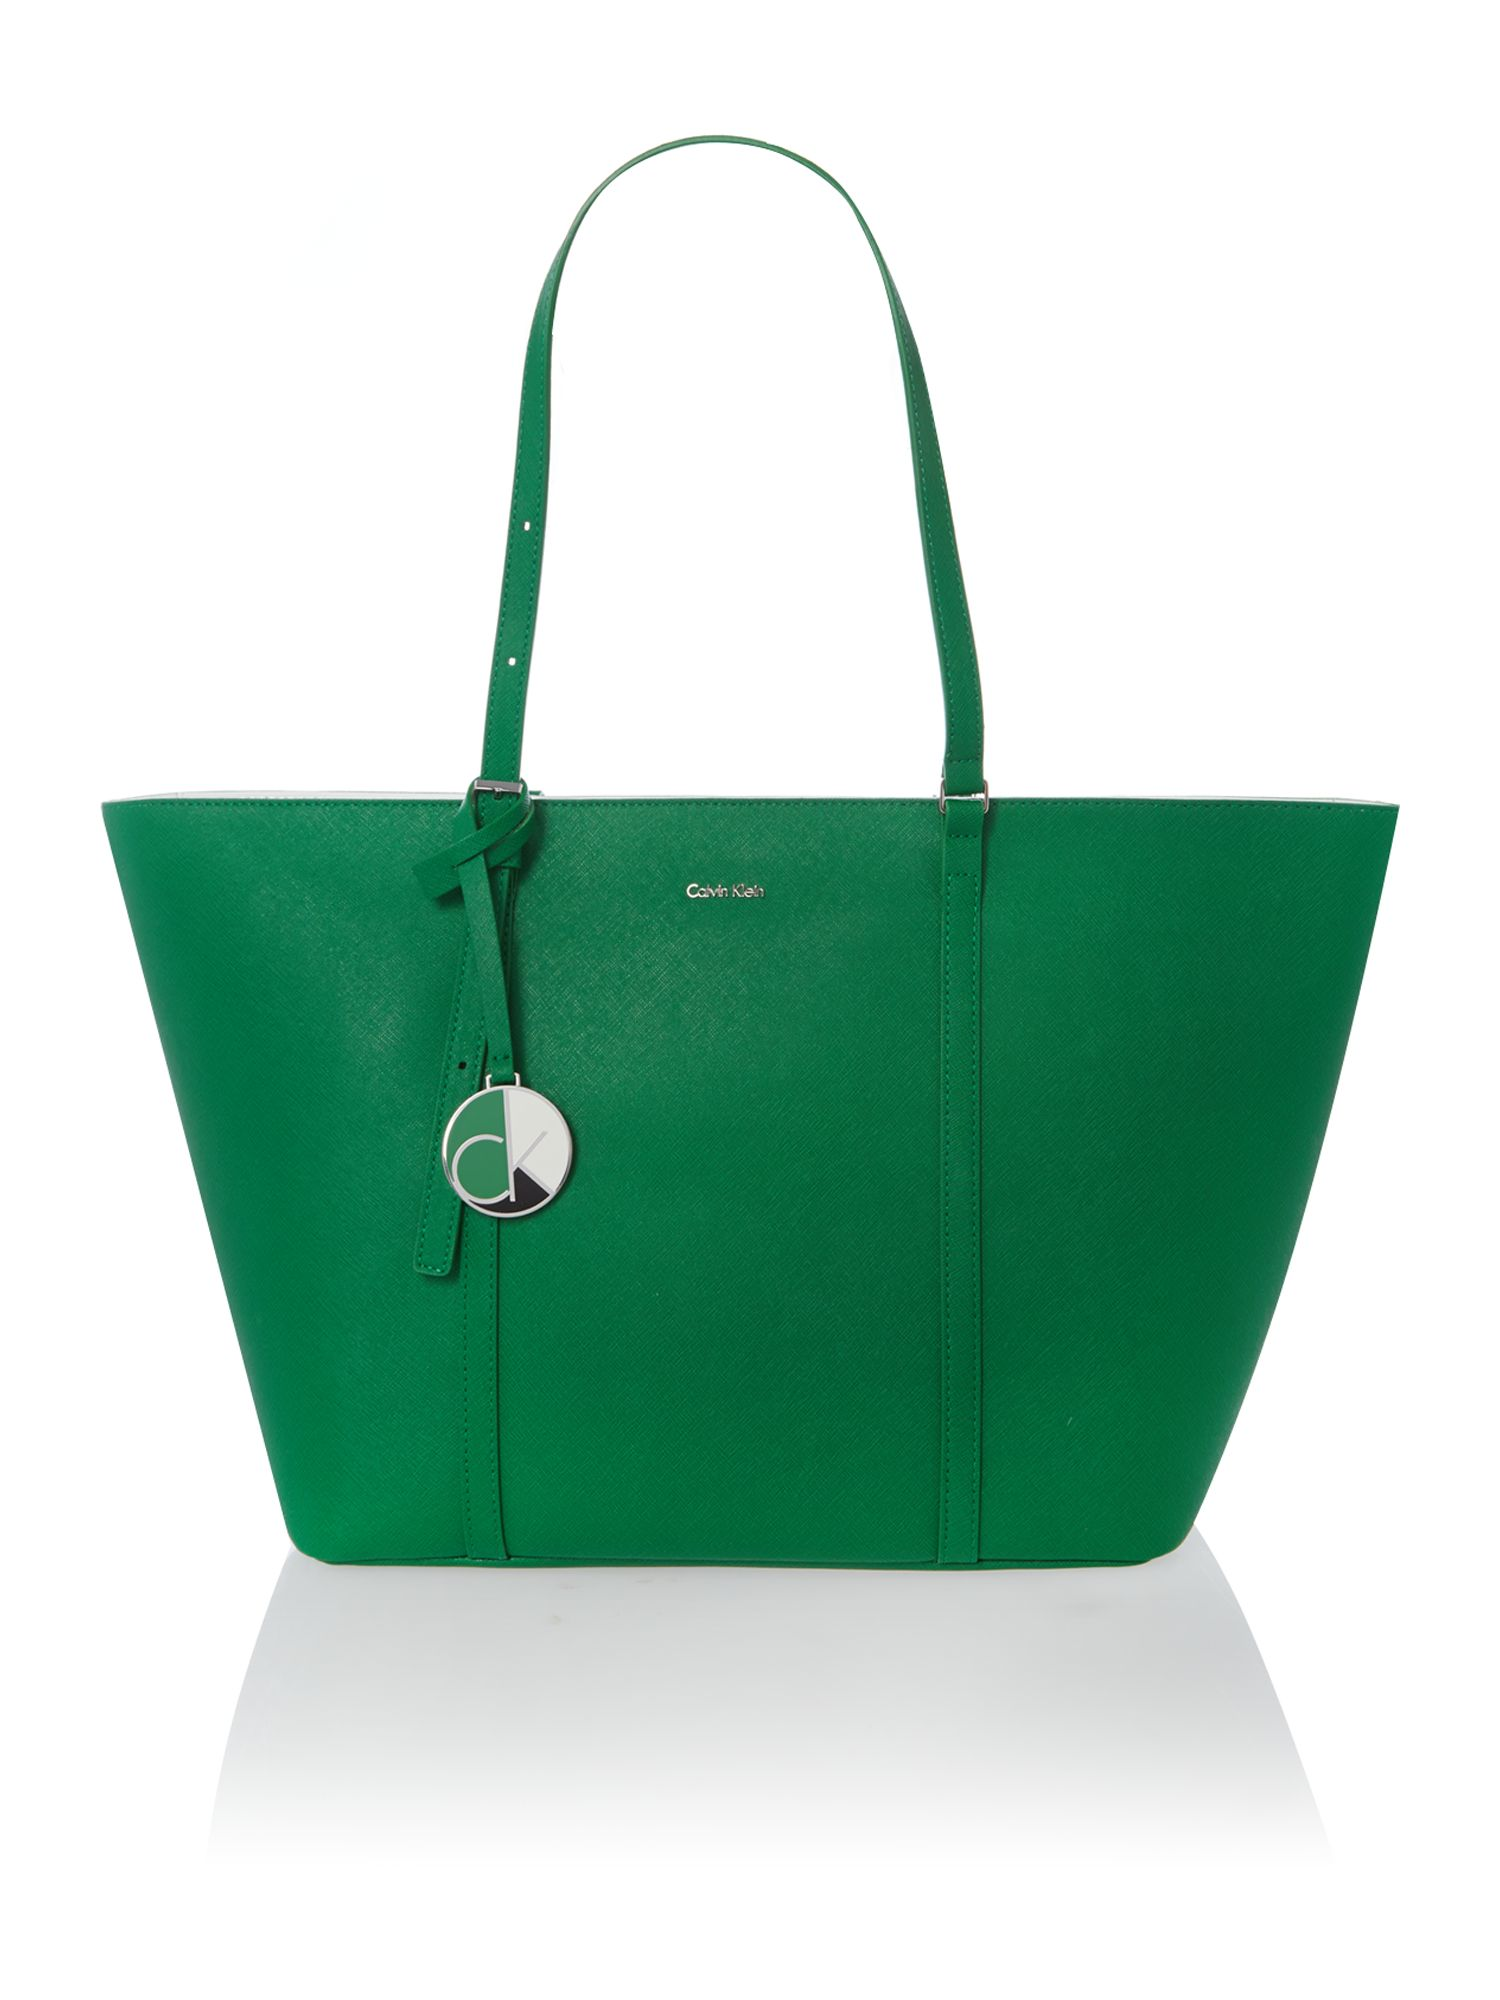 Sofie green large tote bag